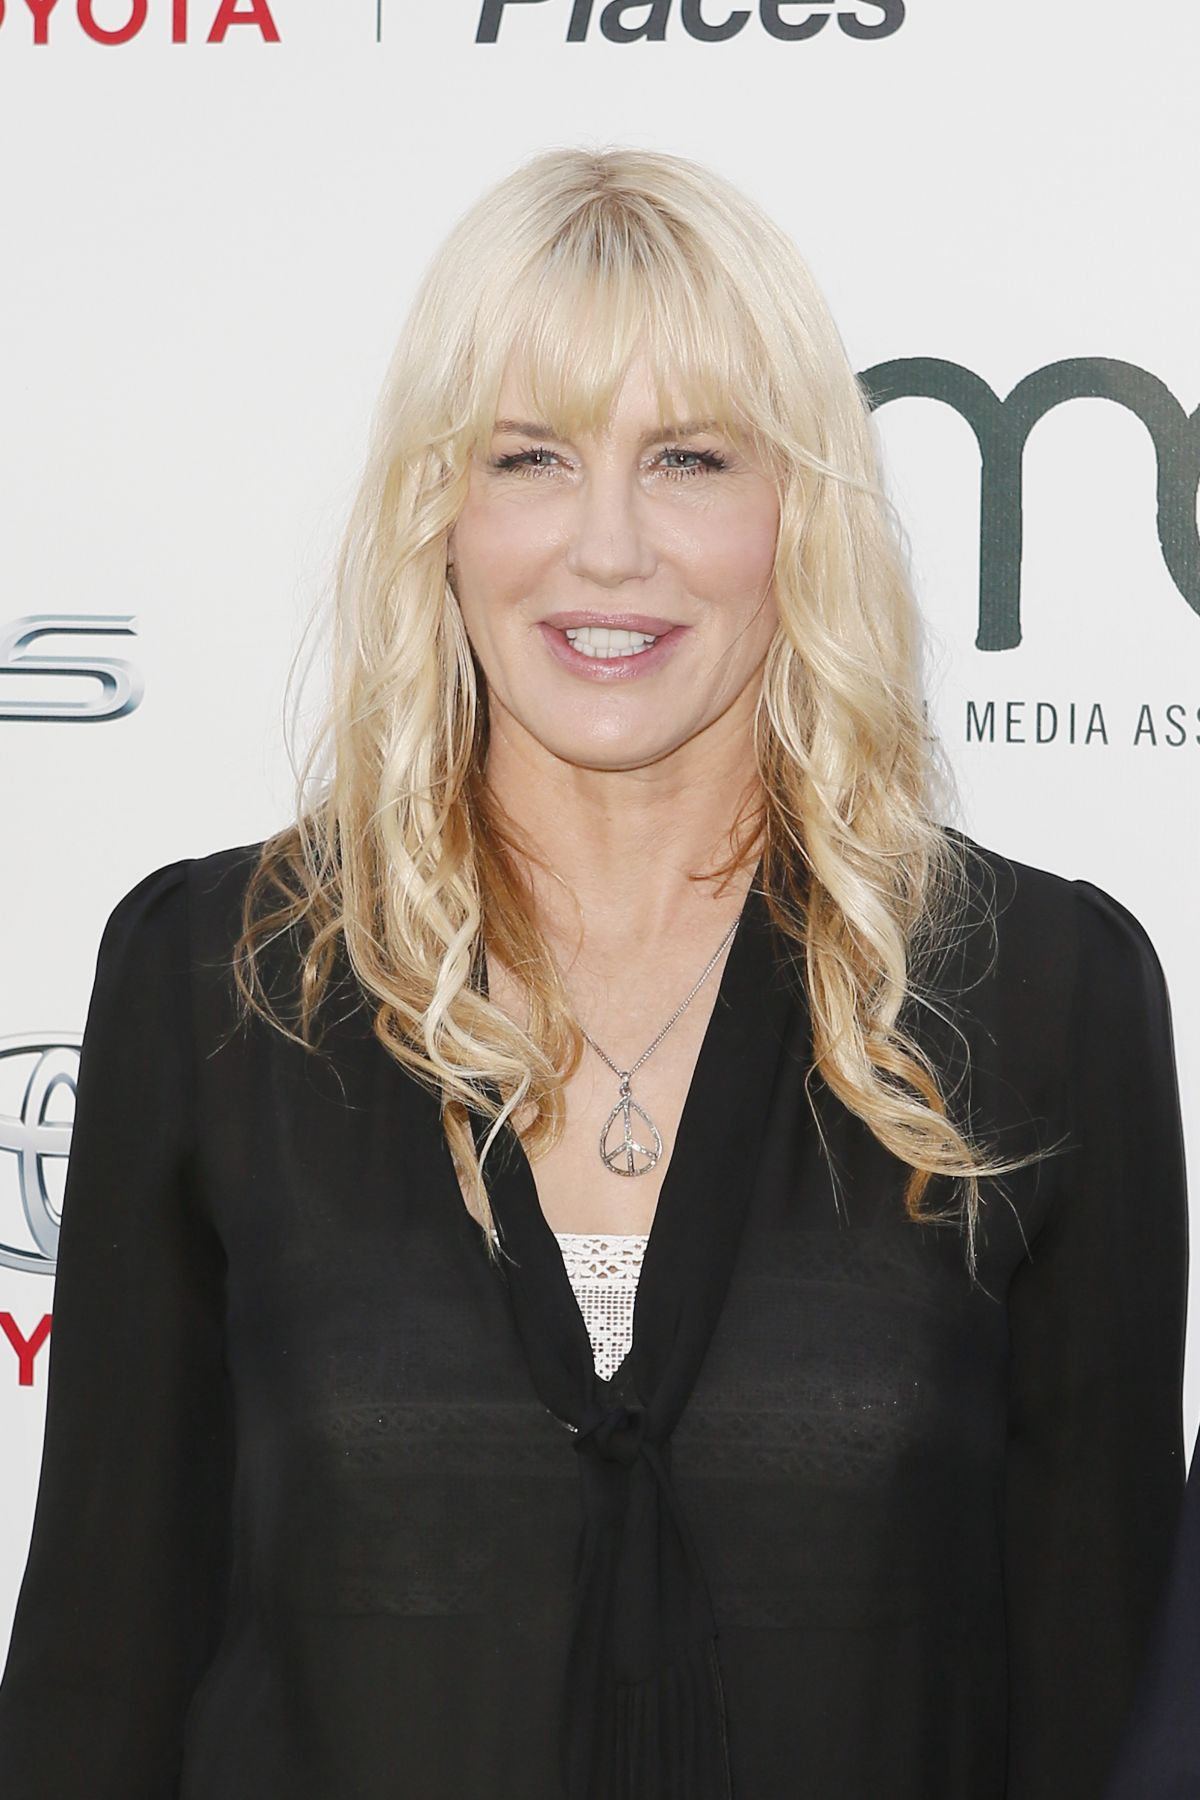 DARYL HANNAH at Environmental Media Awards in Burbank